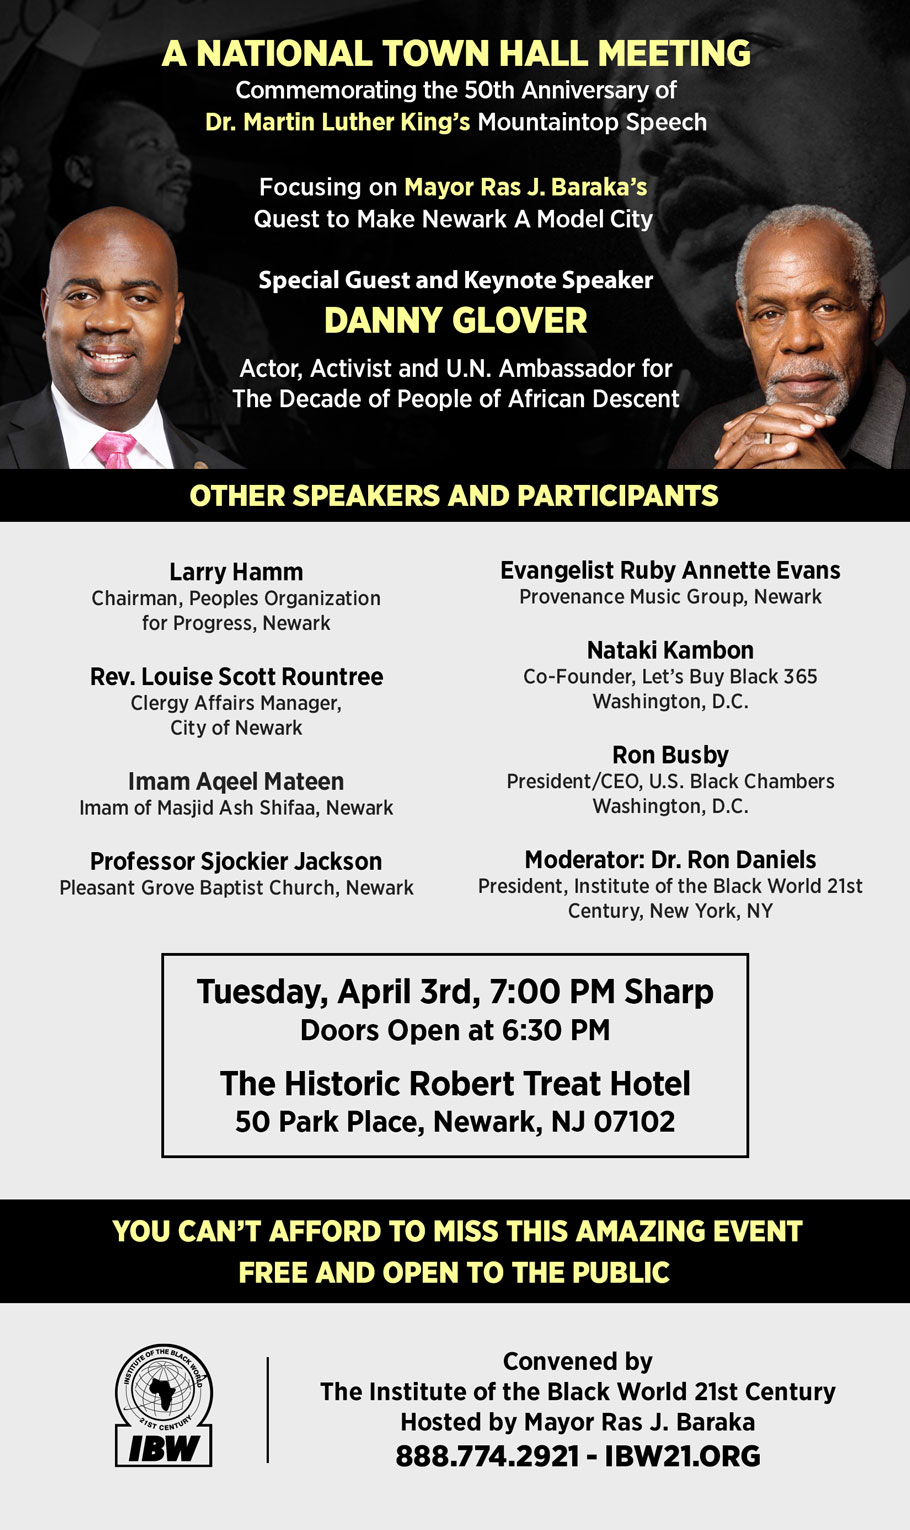 "A National Town Hall Meeting focusing on Mayor Ras J. Baraka's Quest to Make Newark A Model City. Commemorating the 50th Anniversary of Dr. Martin Luther King's Mountaintop Speech. Special Guest and Keynote Speaker. Danny Glover, Actor, Activist and U.N. Ambassador for the Decade of People of African Descent. Tuesday, April 3rd, 7:00 PM, The Historic Robert Treat Hotel. ""April 3rd and 4th, as a follow-up to the milestone State of the Black World Conference IV convened in Newark in November of 2016, scores of distinguished urban planners, community economic development specialists, business and professional leaders and potential investors will gather in Newark from across Black America to explore ways to support Mayor Ras J. Baraka's progressive vision for people and neighborhood-centered economic development. The Town Hall Meeting will be your opportunity to meet, greet and hear the voices of leaders from Black America who have come to support Newark as a Model City!"" – Dr. Ron Daniels, President, IBW21. You Can't Afford to Miss This Amazing Event. Save the Date and Standby for Further Details. Convened by the Institute of the Black World 21st Century (888.774.2921) Hosted by Mayor Ras J. Baraka"